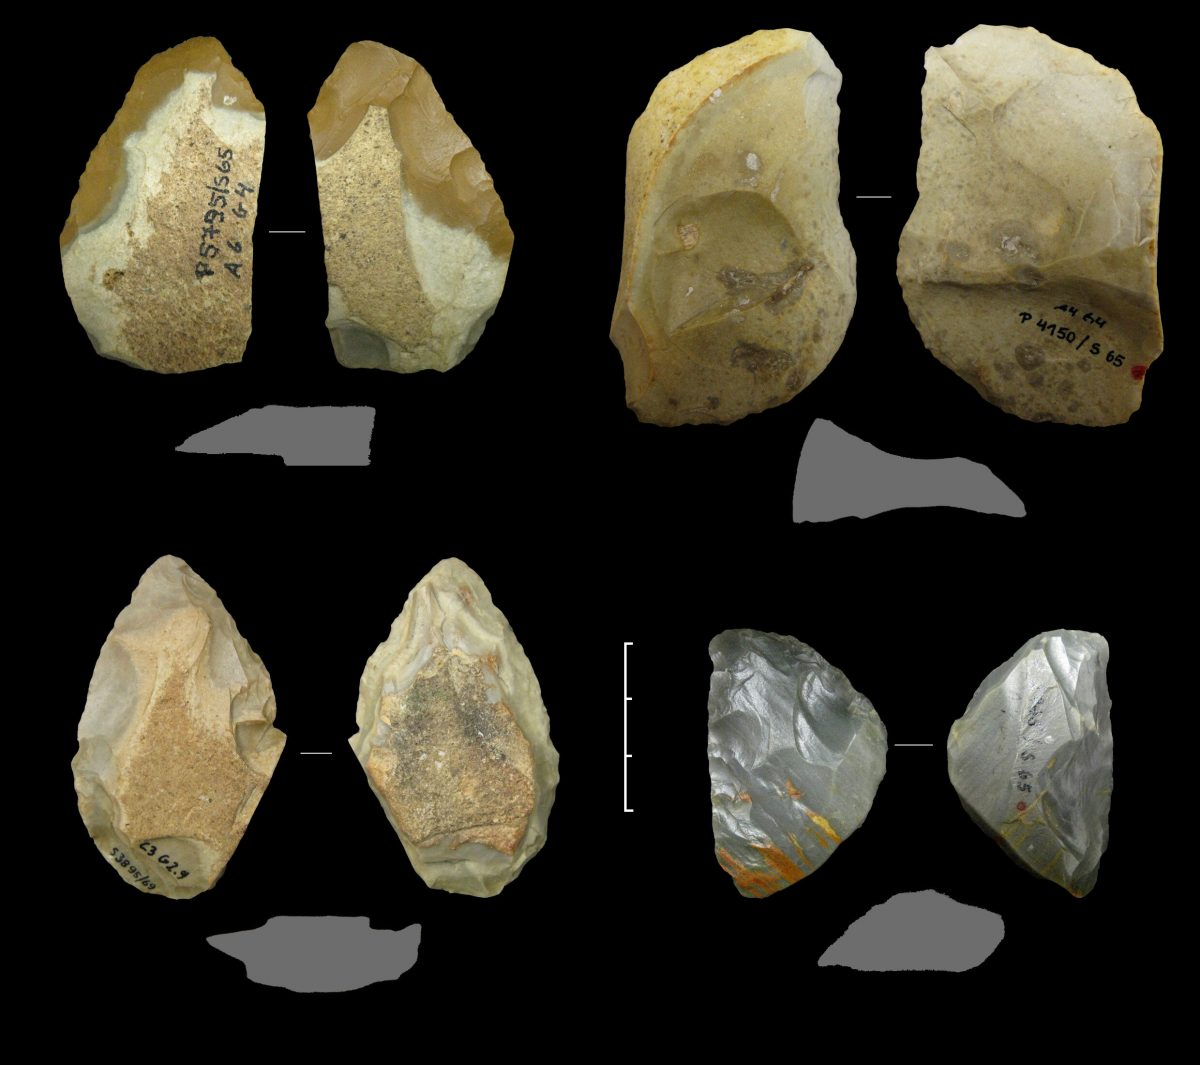 Various Keilmesser and a simple backed knife (top right) from the Neanderthal period 60,000 to 44,000 years ago, from the Sesselfelsgrotte cave near Kelheim (G-complex, excavations by Prof. Freund, FAU. Credit: D. Delpiano, UNIFE